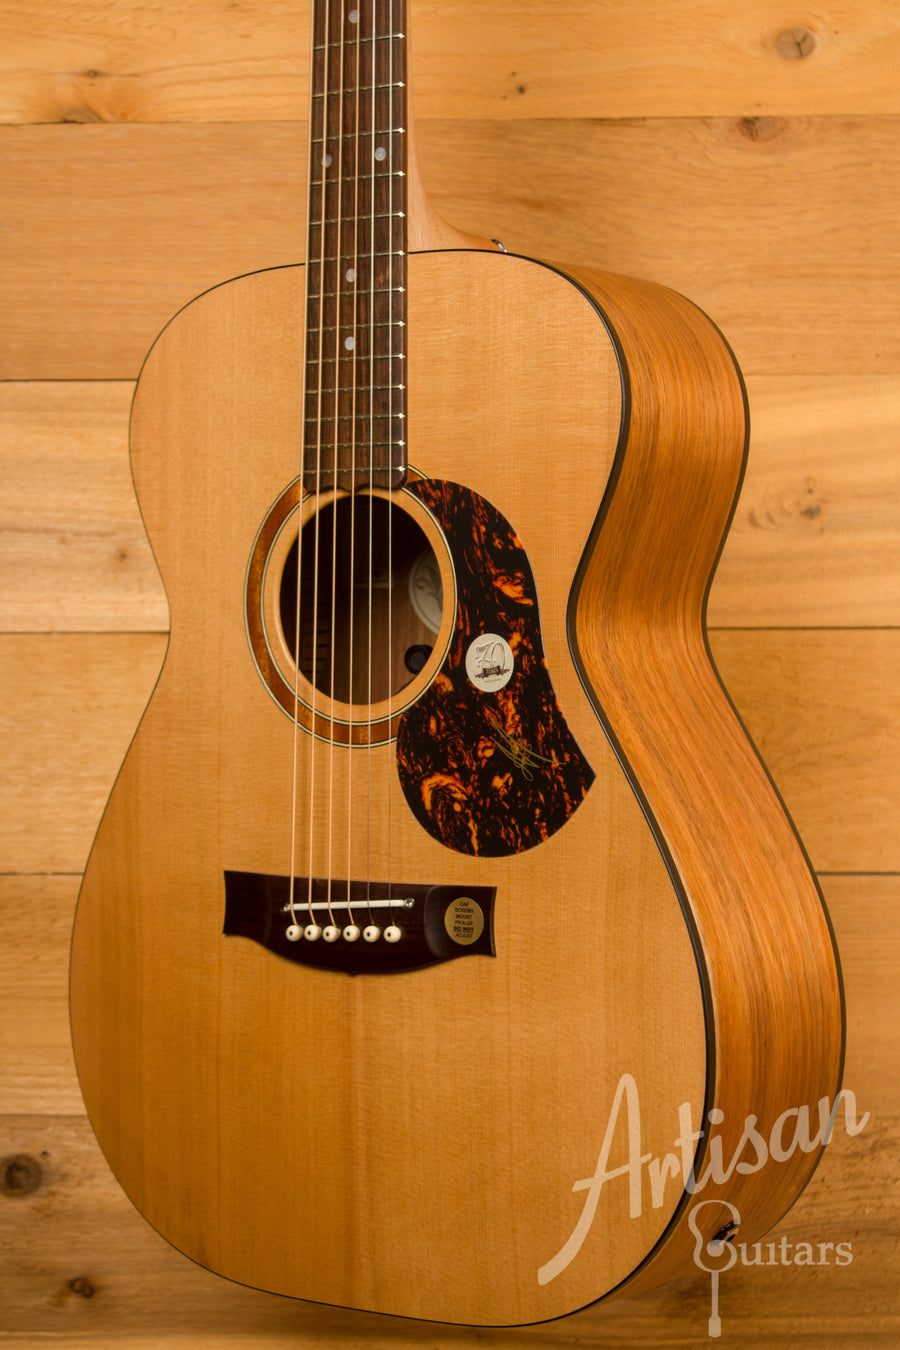 Maton SRS808 Guitar Western Red Cedar and Solid Blackwood ID-11495 - Artisan Guitars